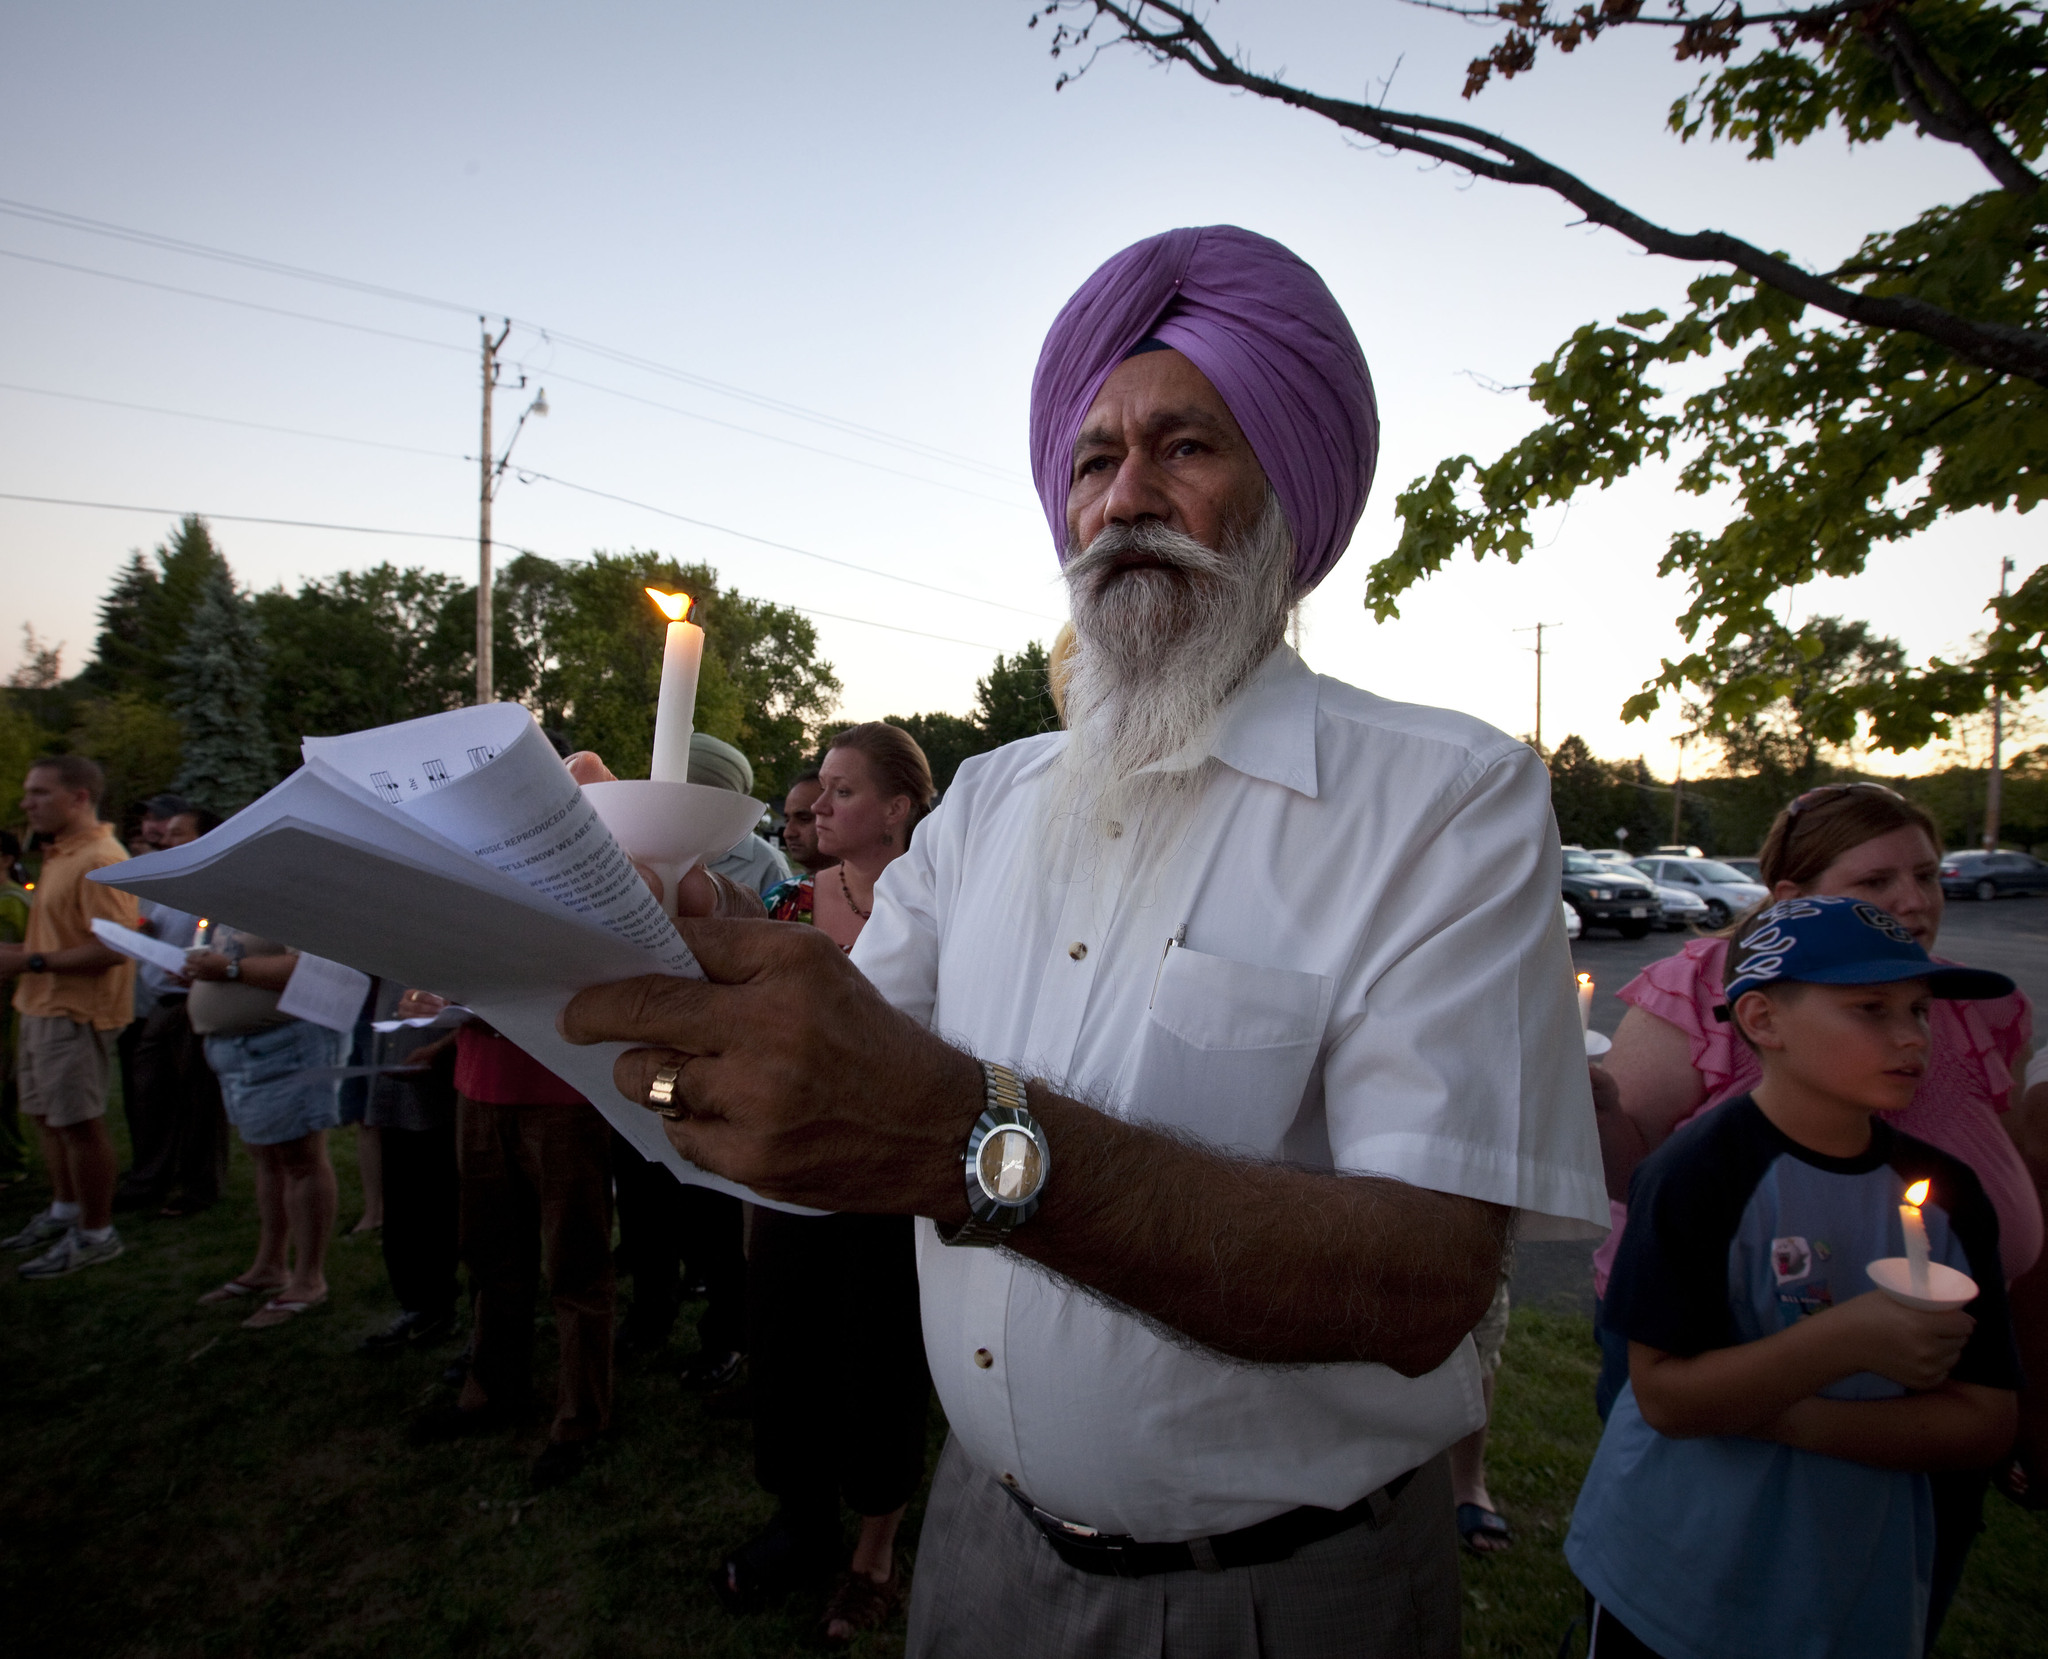 Headline for NOW Sikh Temple shooting coverage